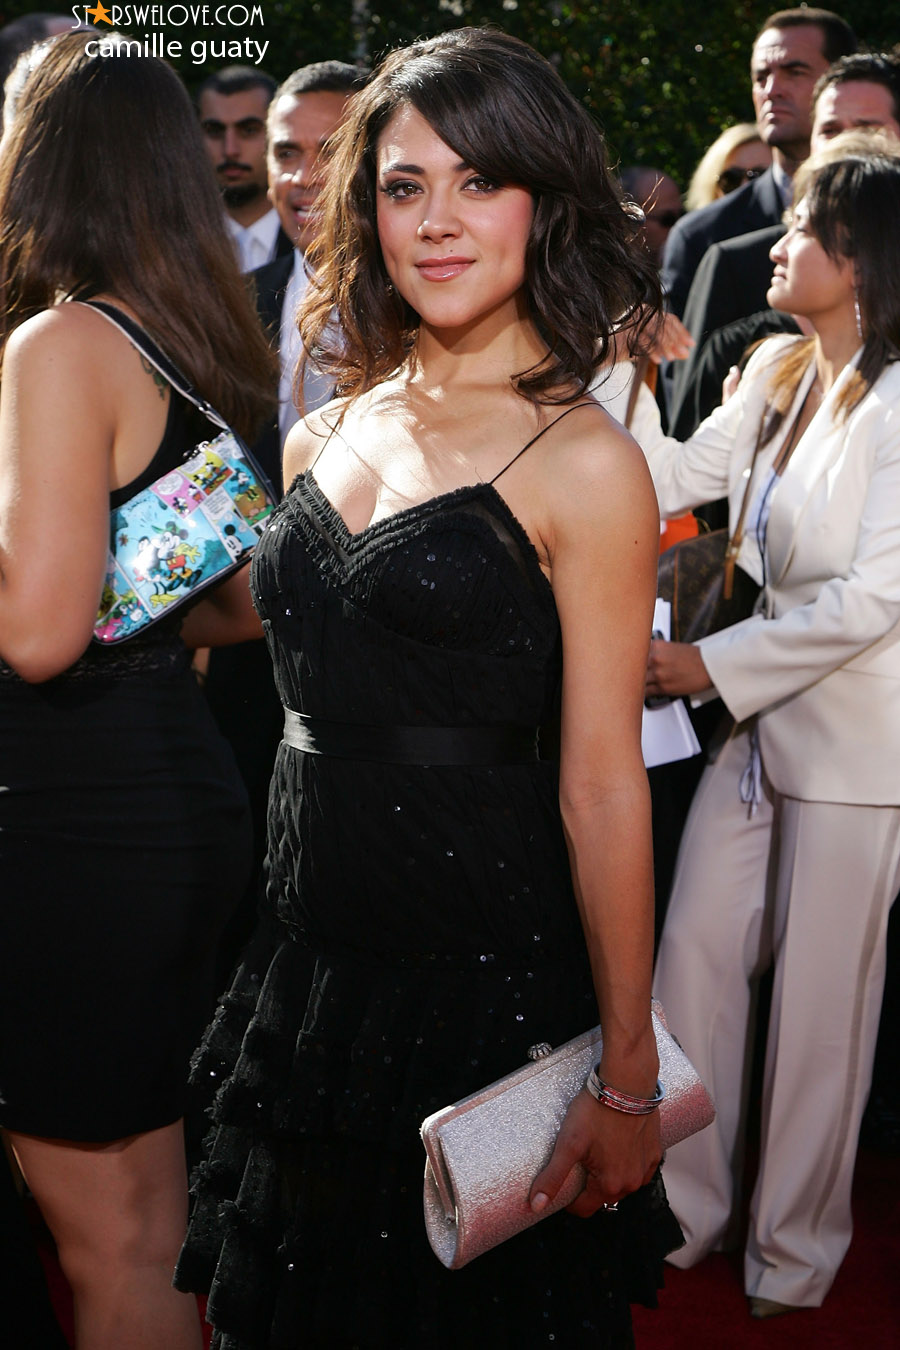 Camille Guaty photo (camille_guaty002, 900 x 1350 pixels, 240 kB)